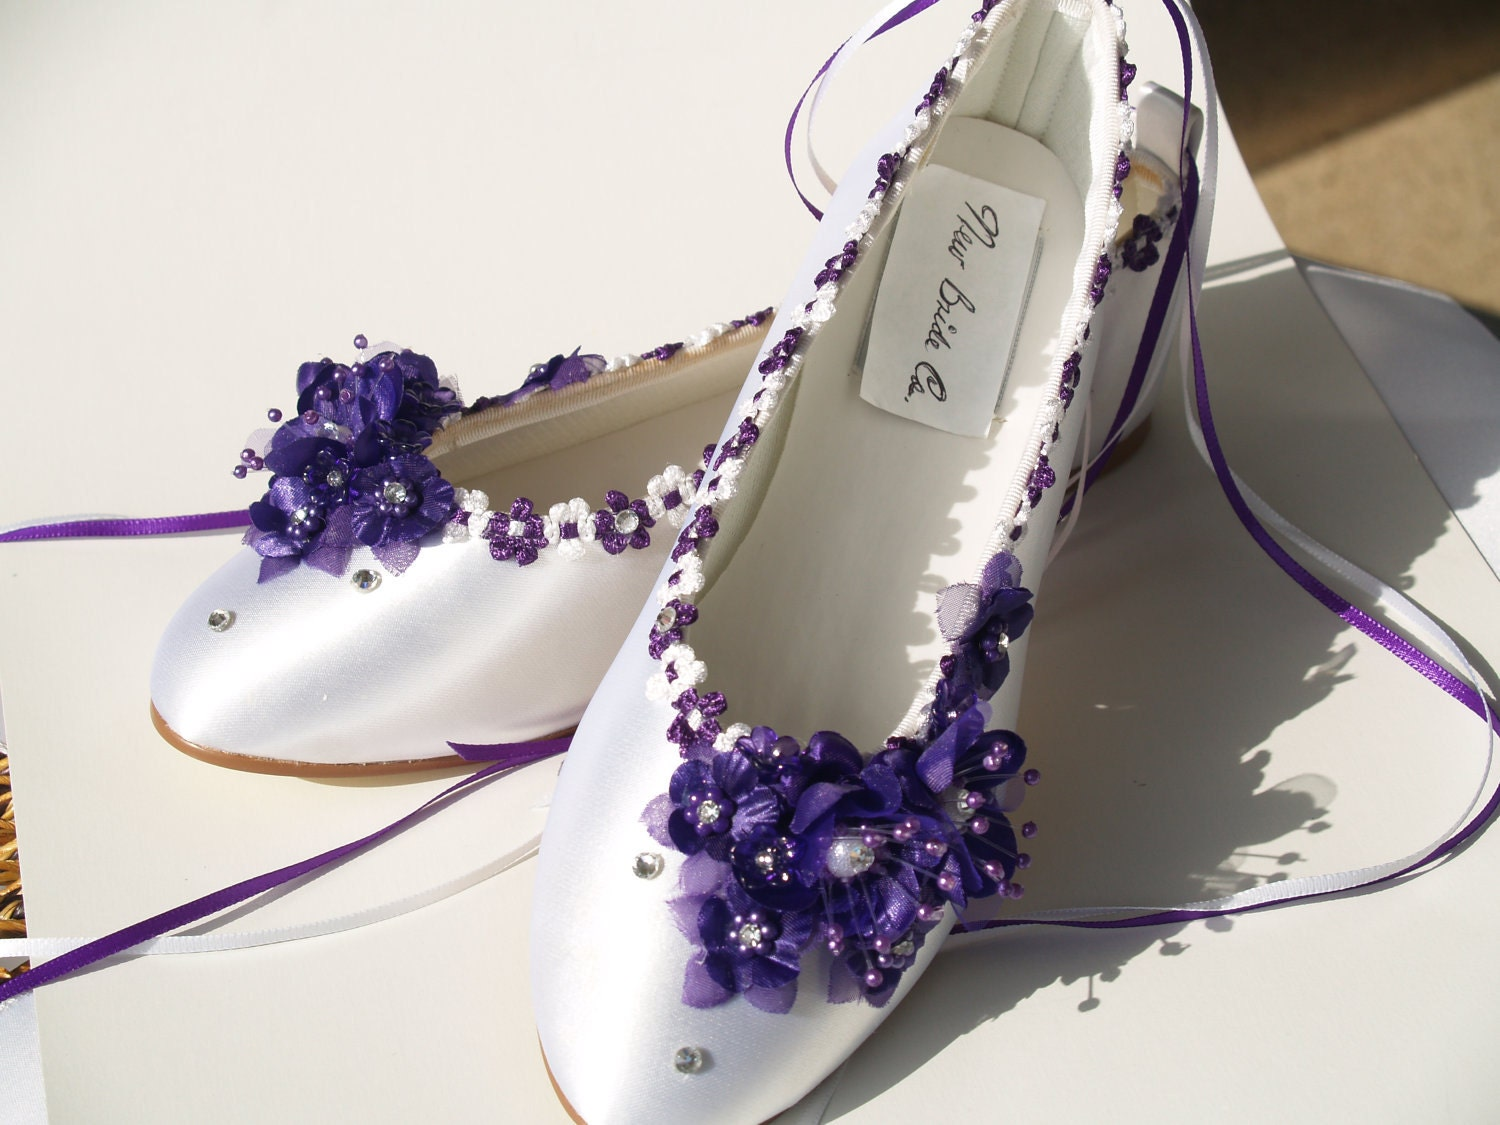 Plum Colored Shoes For Weding 016 - Plum Colored Shoes For Weding